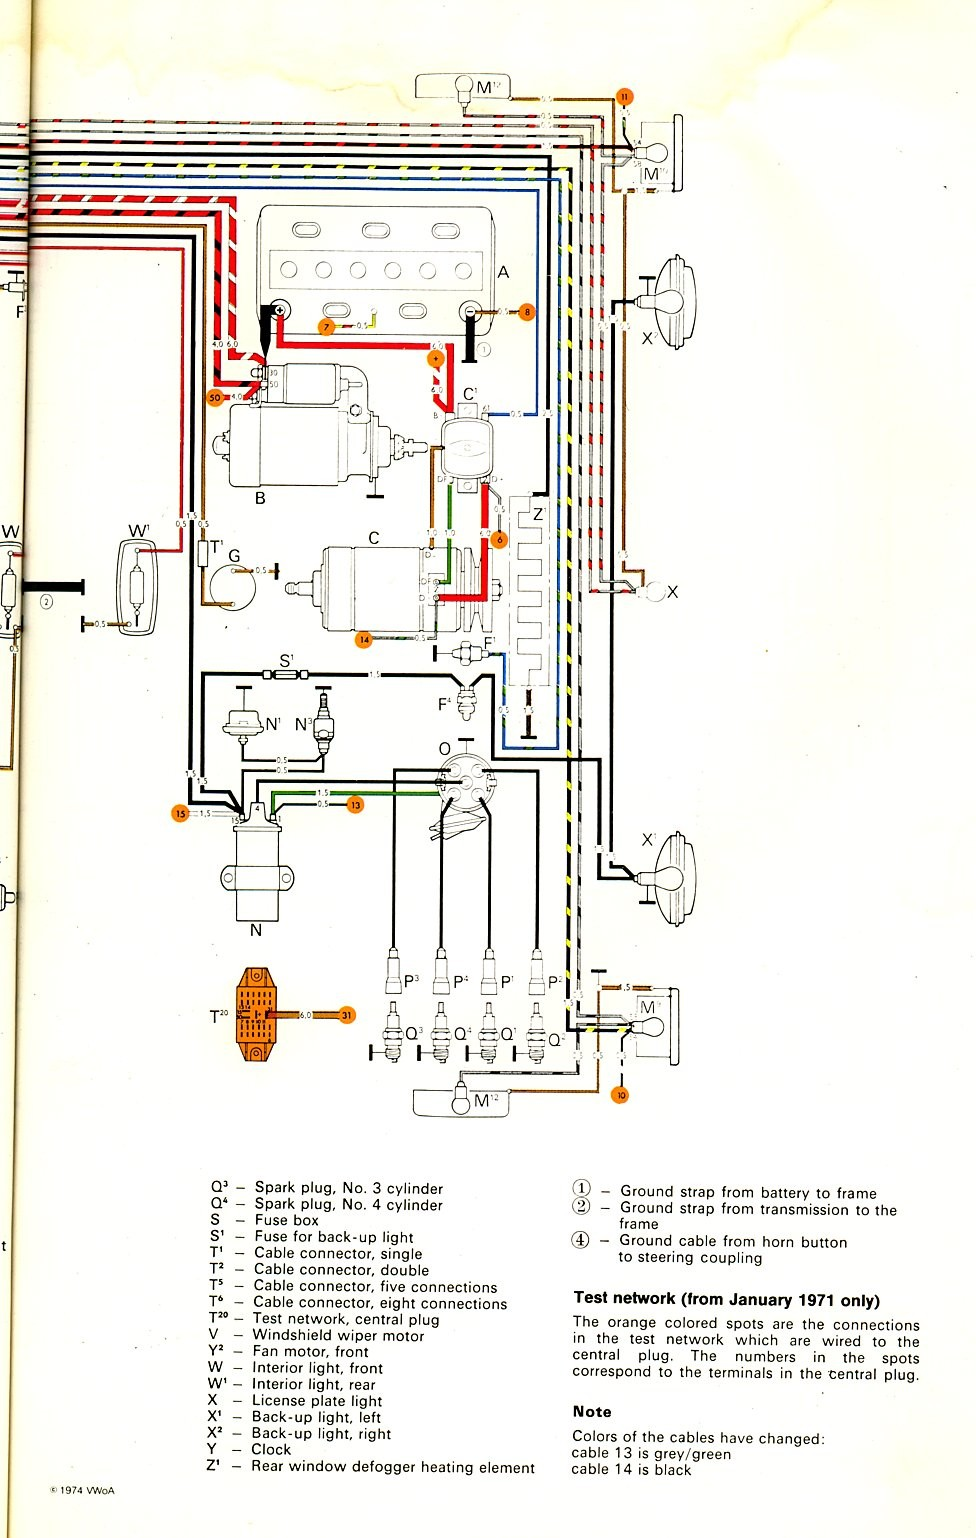 1973 Vw Steering Diagram Schematic Diagrams Super Beetle Wiring Unique Image